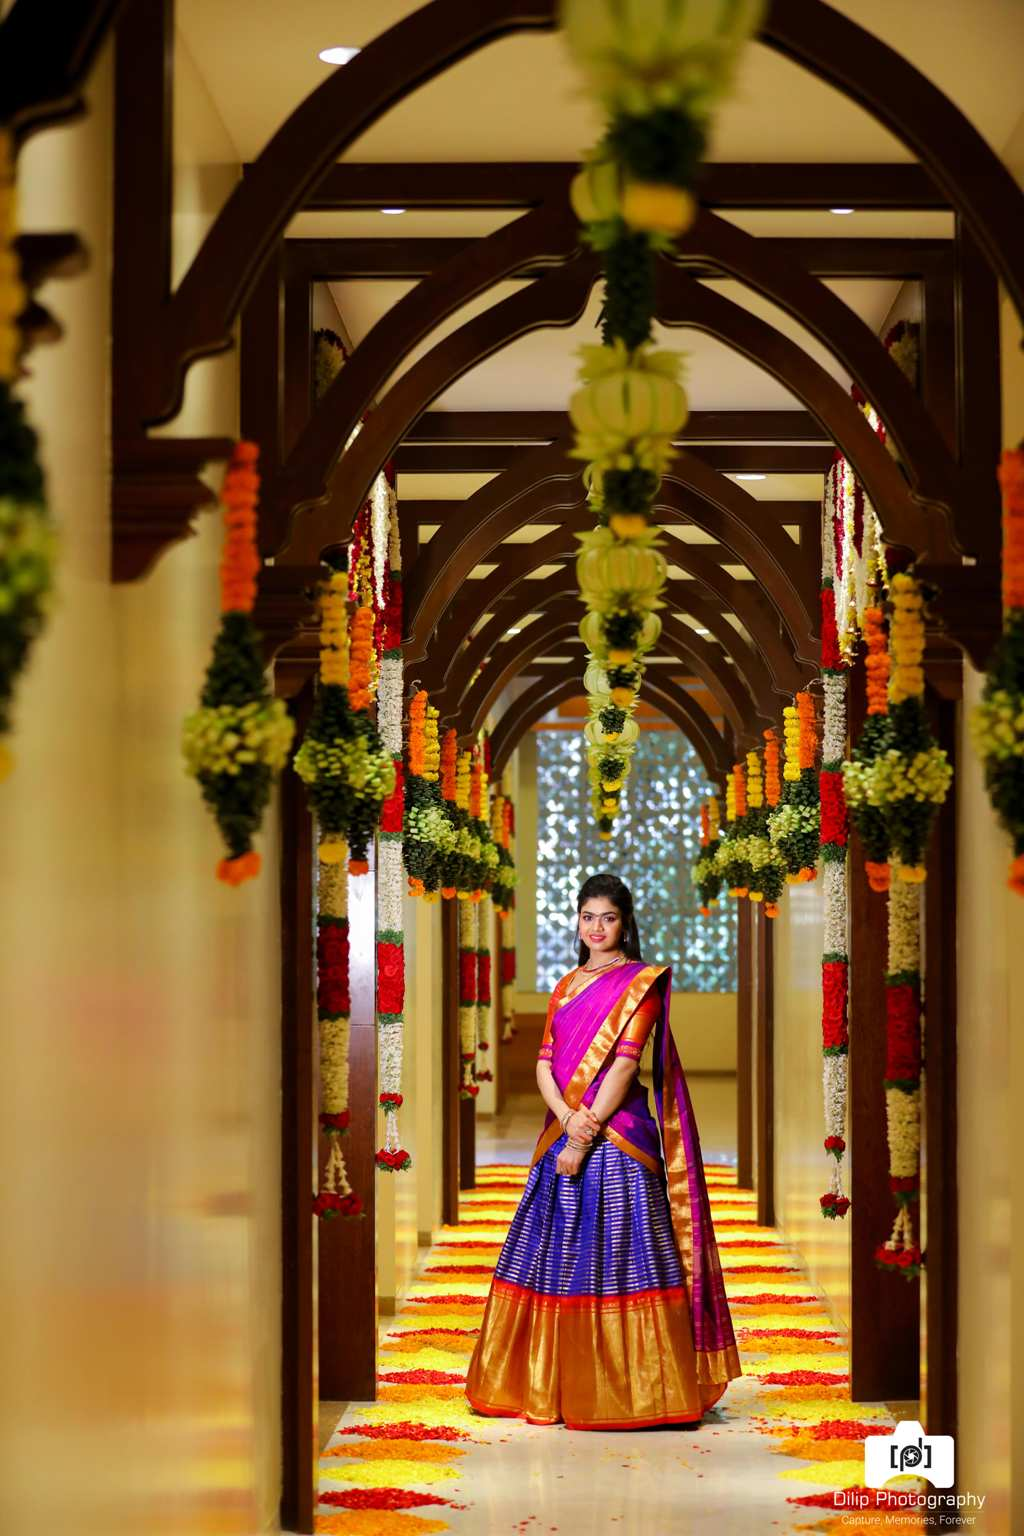 picture of sriramulu's daughter in a hallway with flower decorations